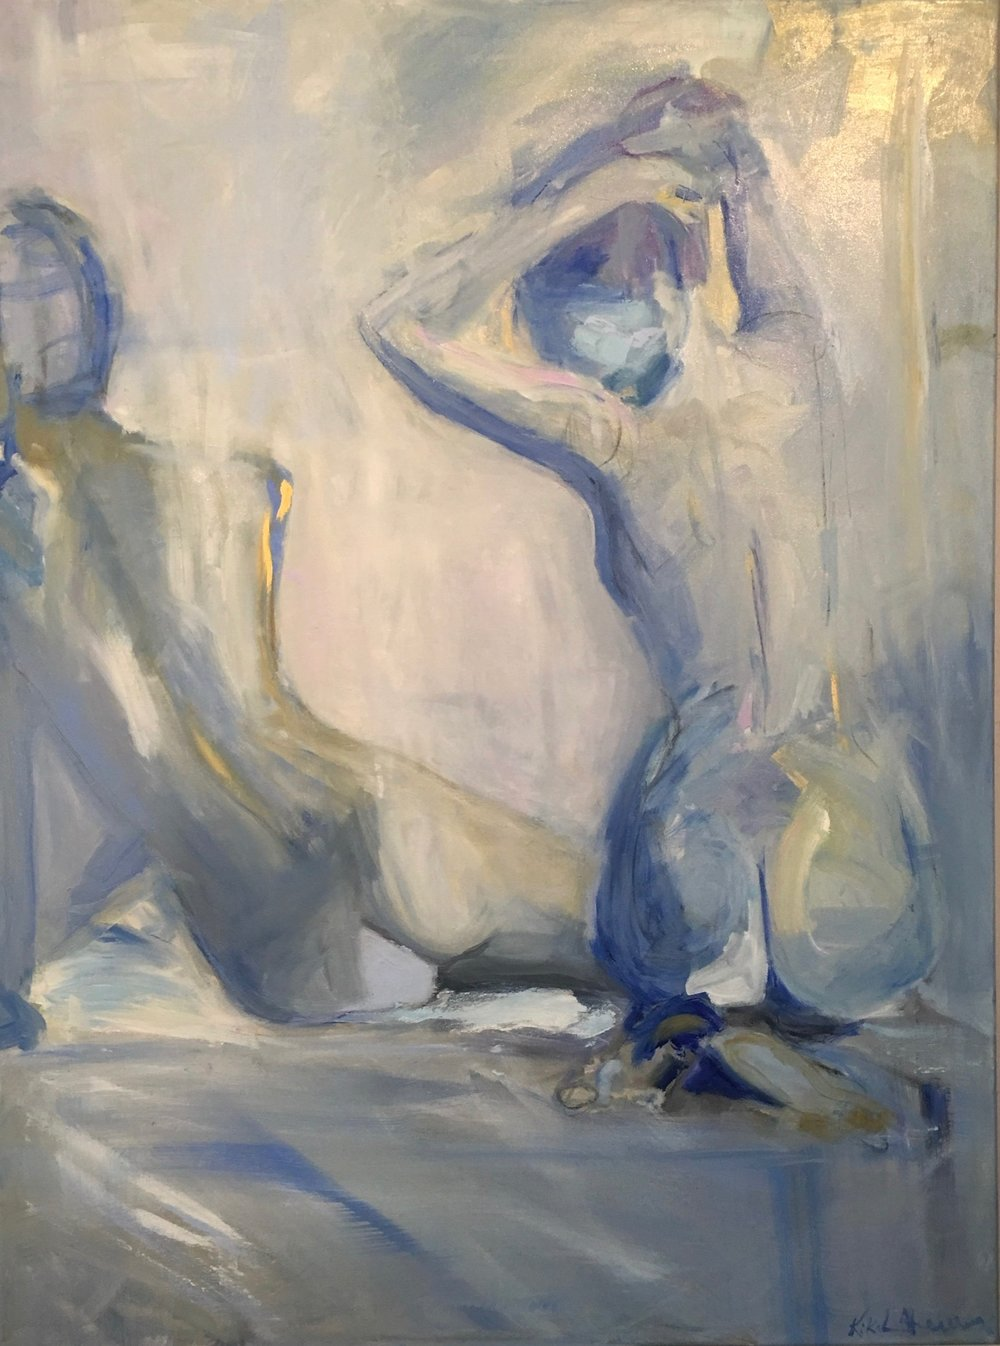 Blue Figurative II